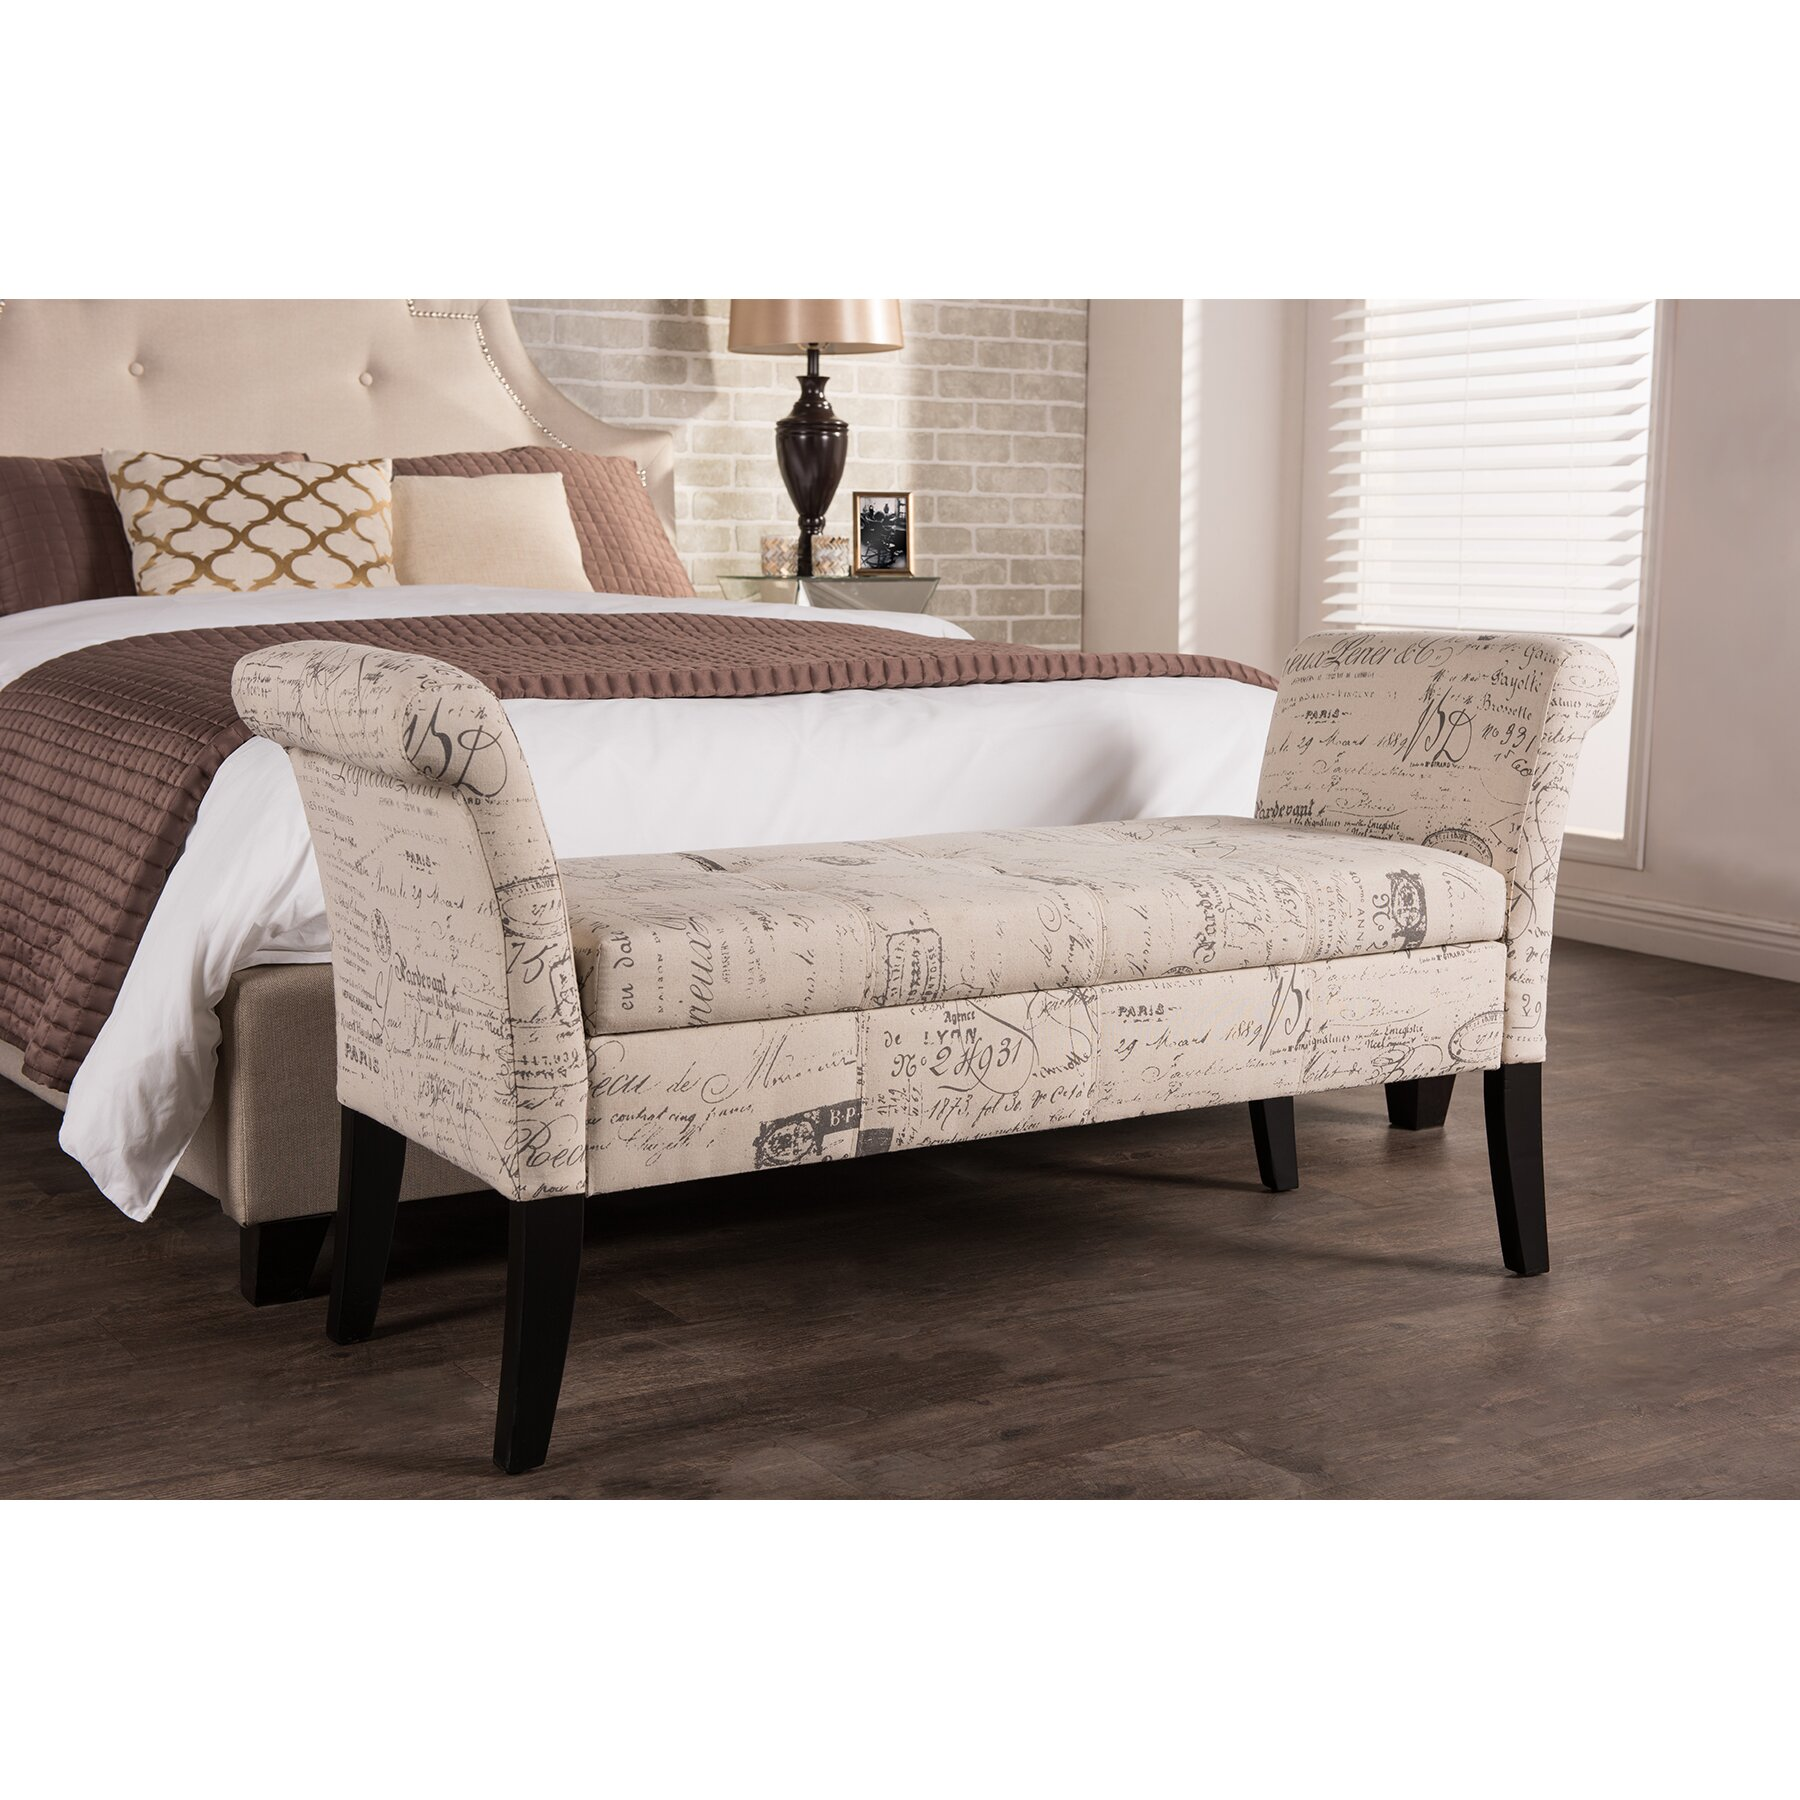 wholesale interiors baxton studio upholstered storage 14173 | baxton studio baxton studio avignon towers patterned french laundry fabric storage ottoman bench